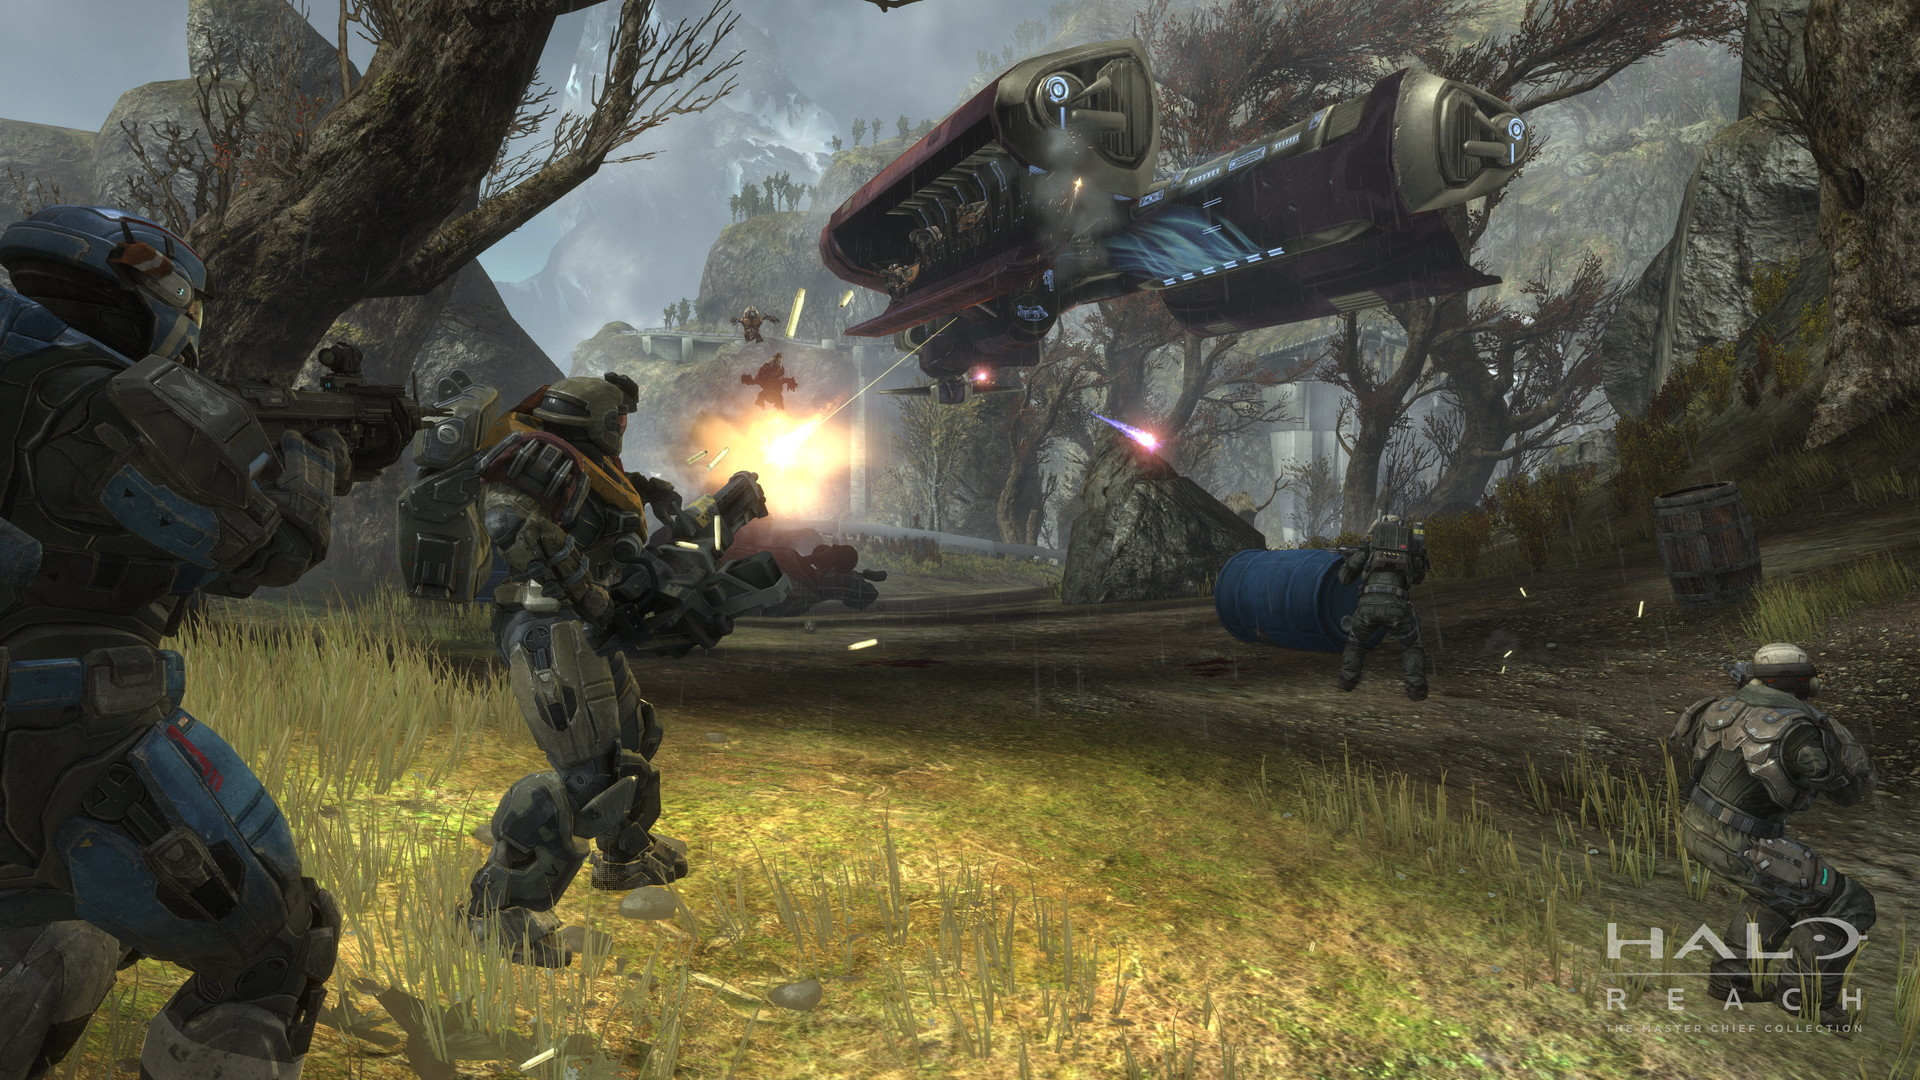 Halo: Reach - screenshot 12